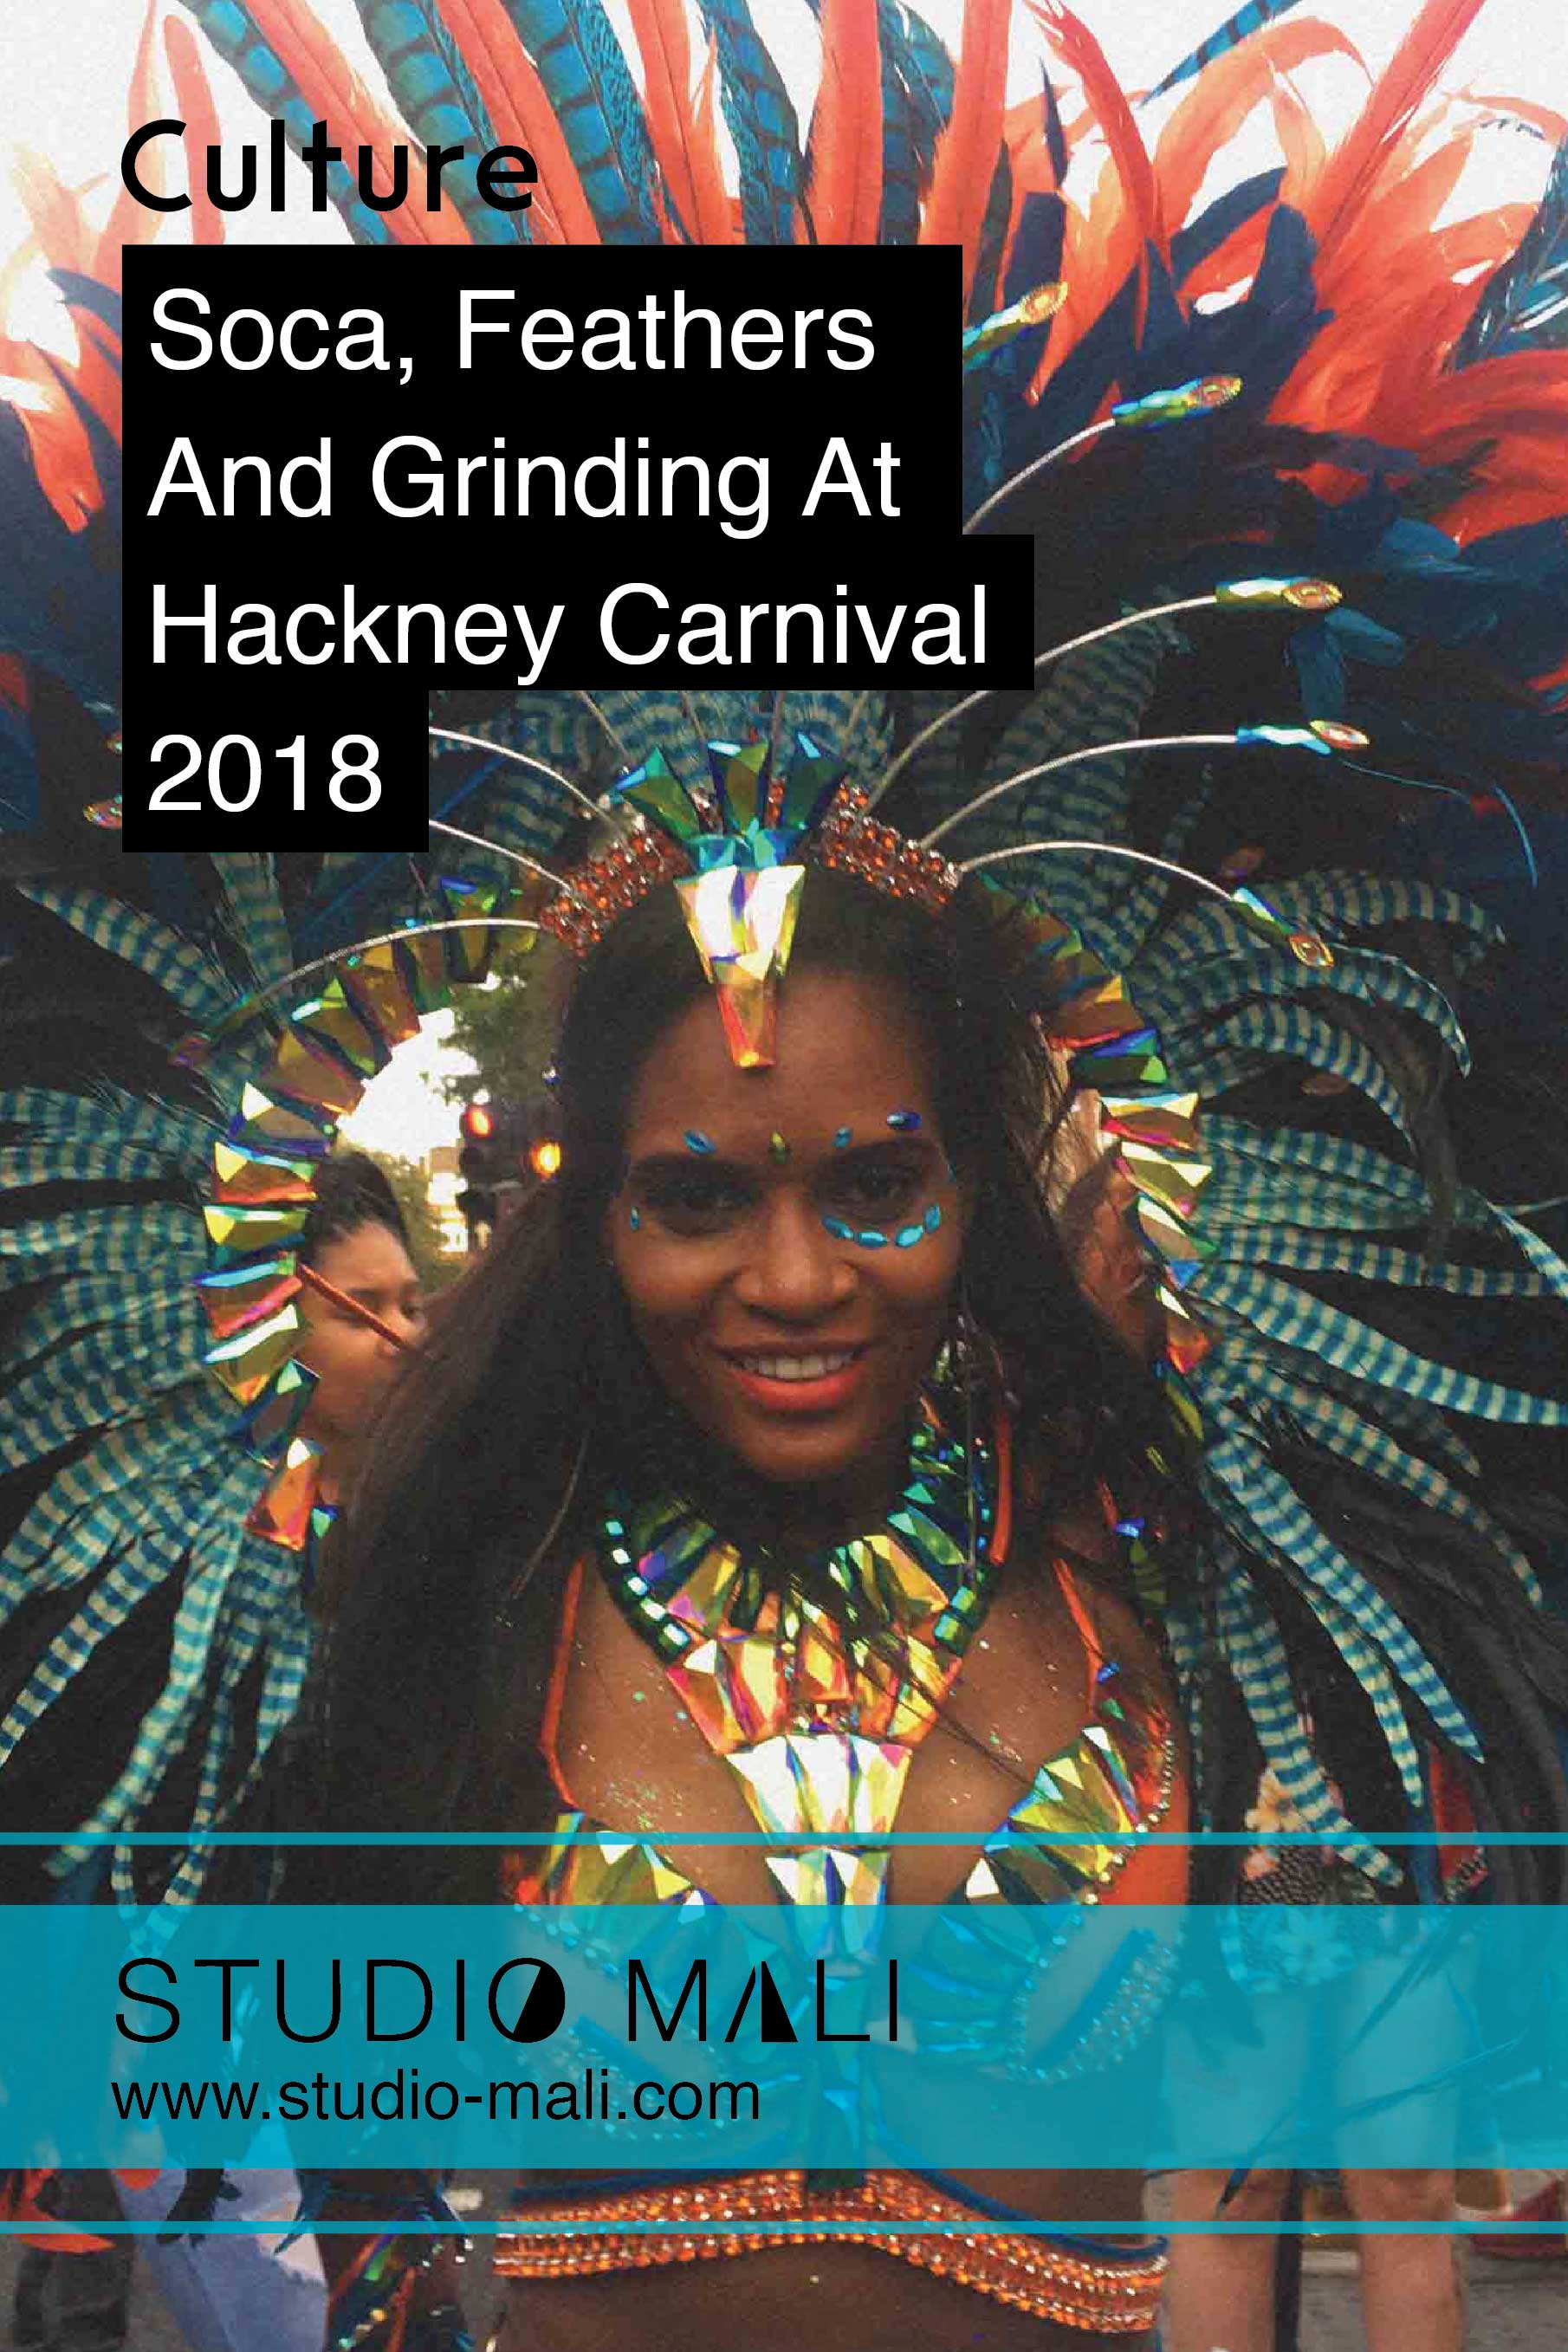 Culture - Soca, Feathers And Grinding At Hackney Carnival 2018, By Studio Mali.jpg